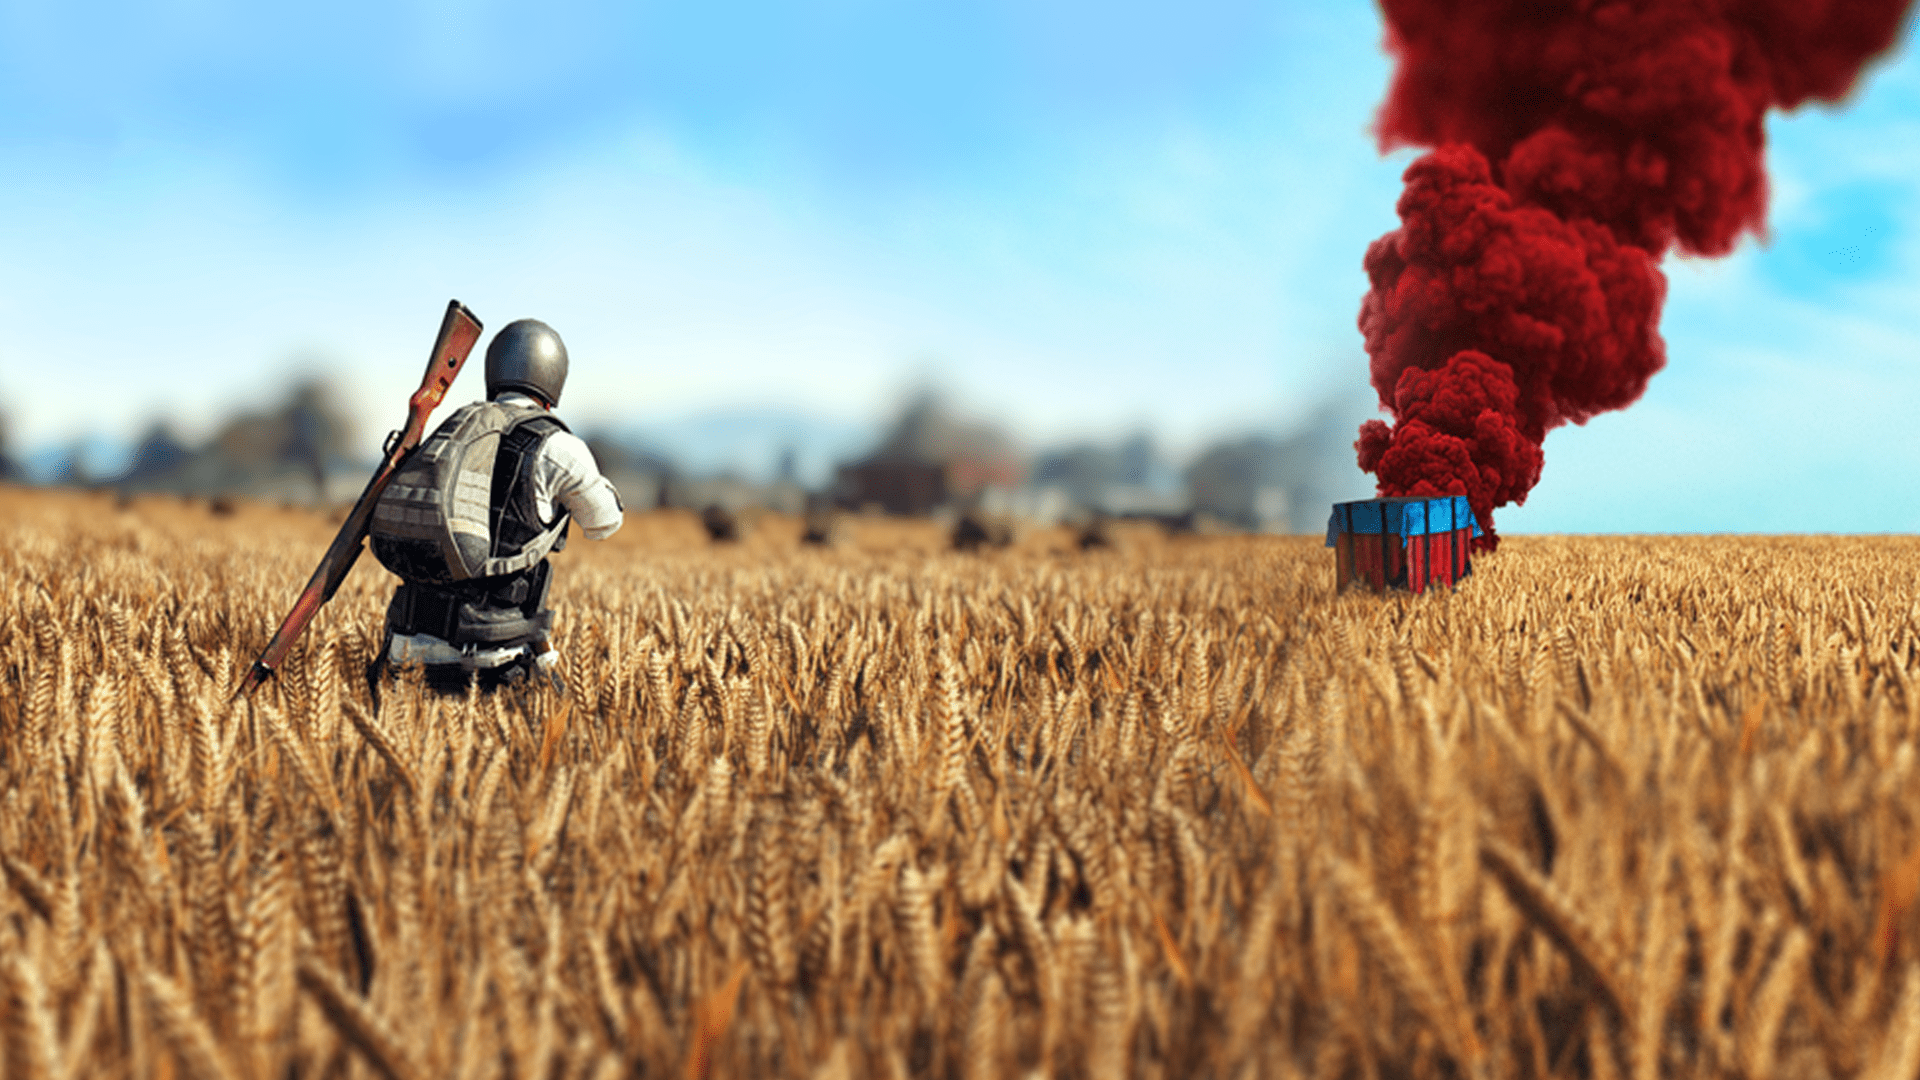 Pubg Wallpaper 4k: PUBG Poster Supply Drop Wallpaper Desktop And Mobile